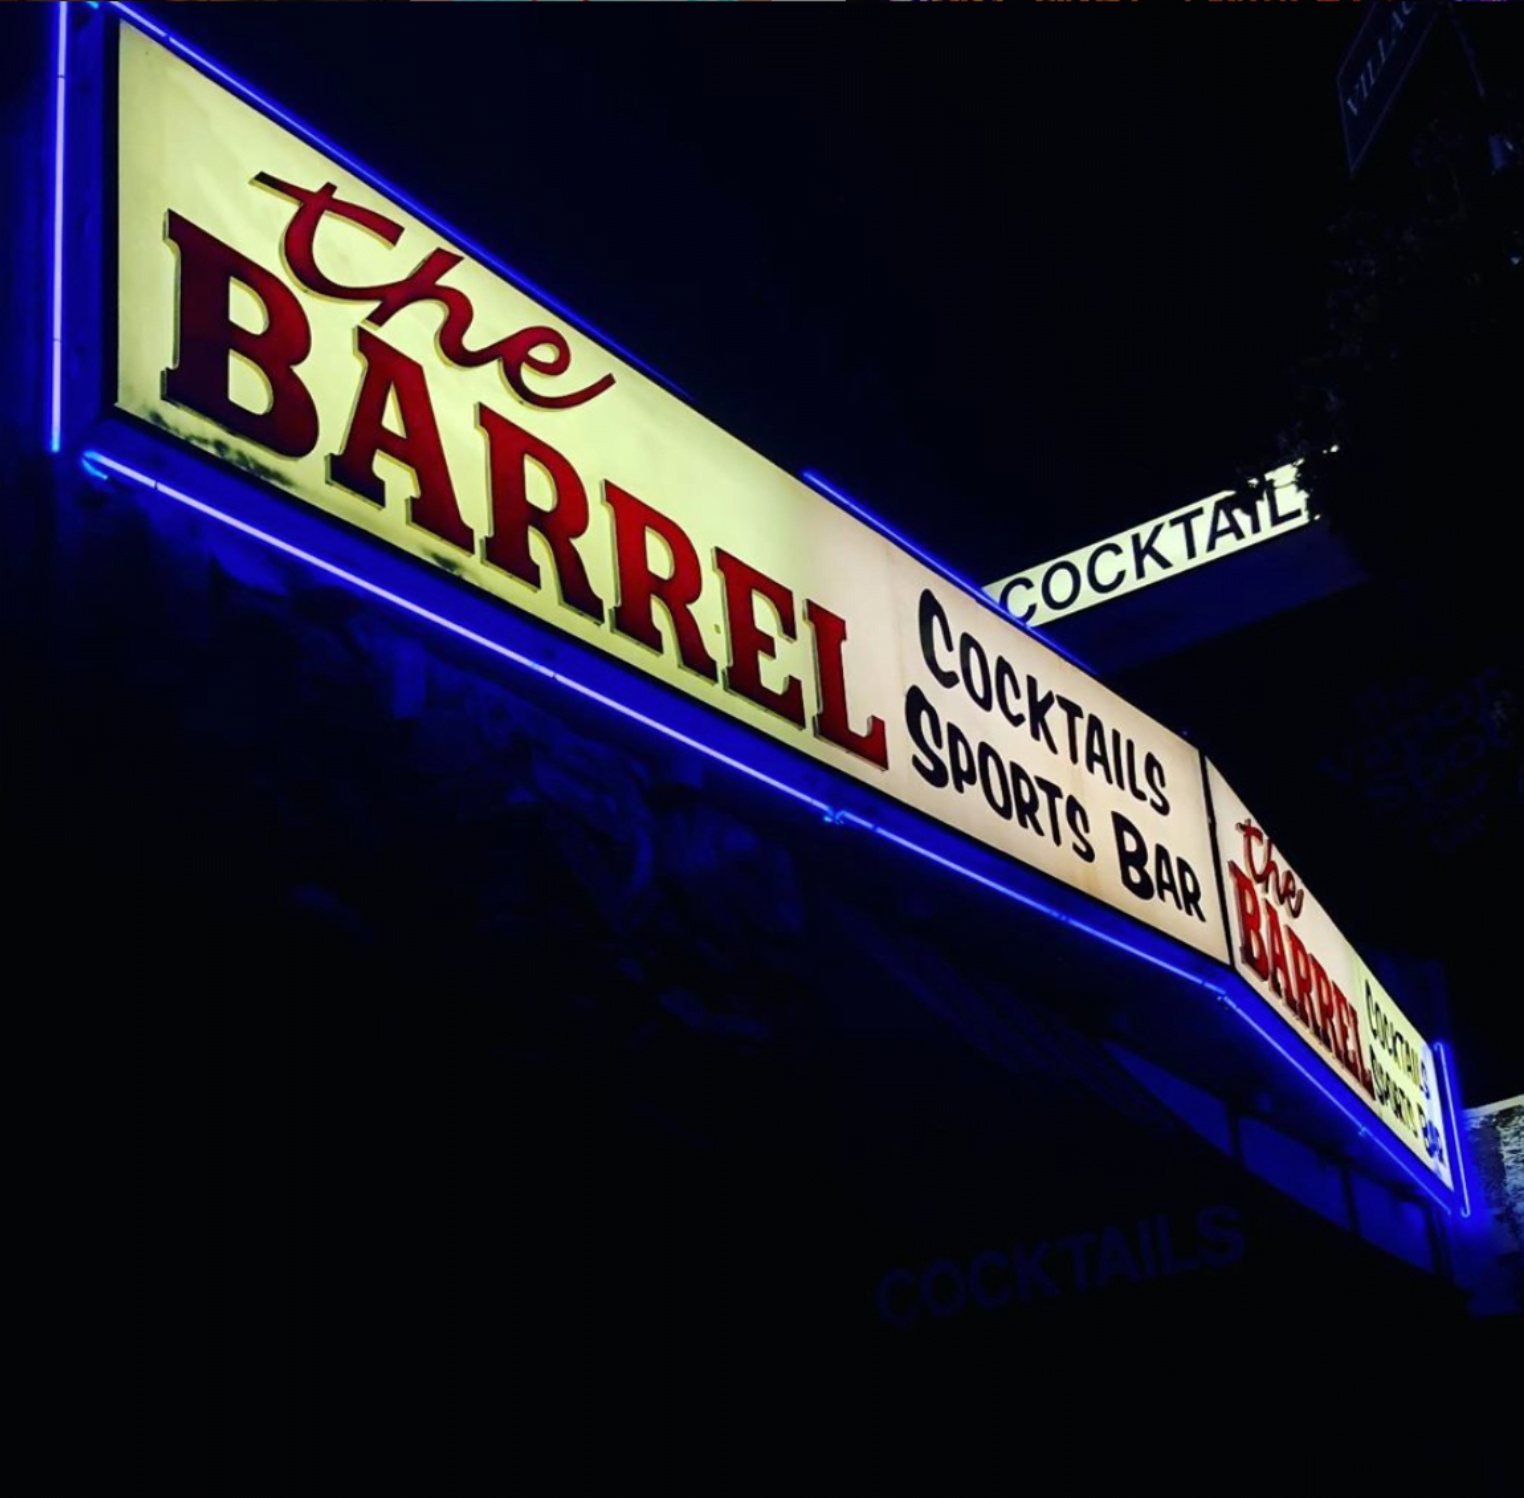 The Barrel Tavern Sherman Oaks New Owners - Thoughtful Contribution